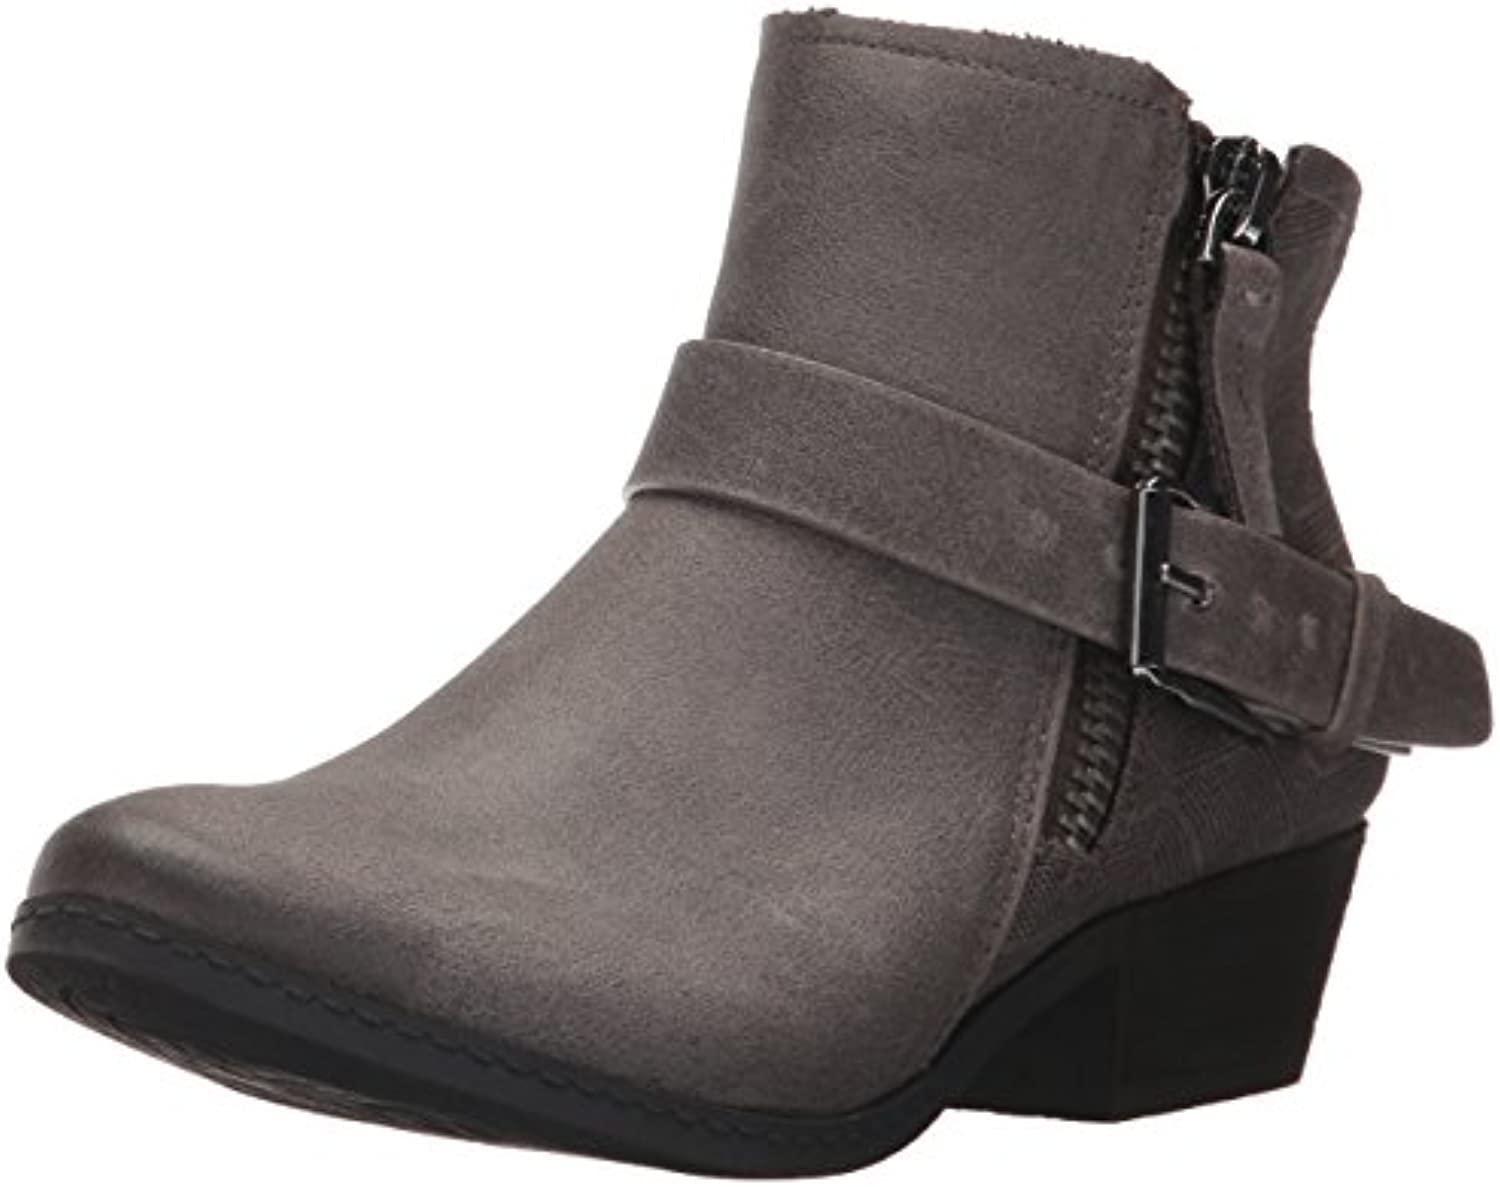 Not Rated Tessa Donna Pelle Sintetica Stivaletto | Shopping Online  | Uomini/Donne Scarpa